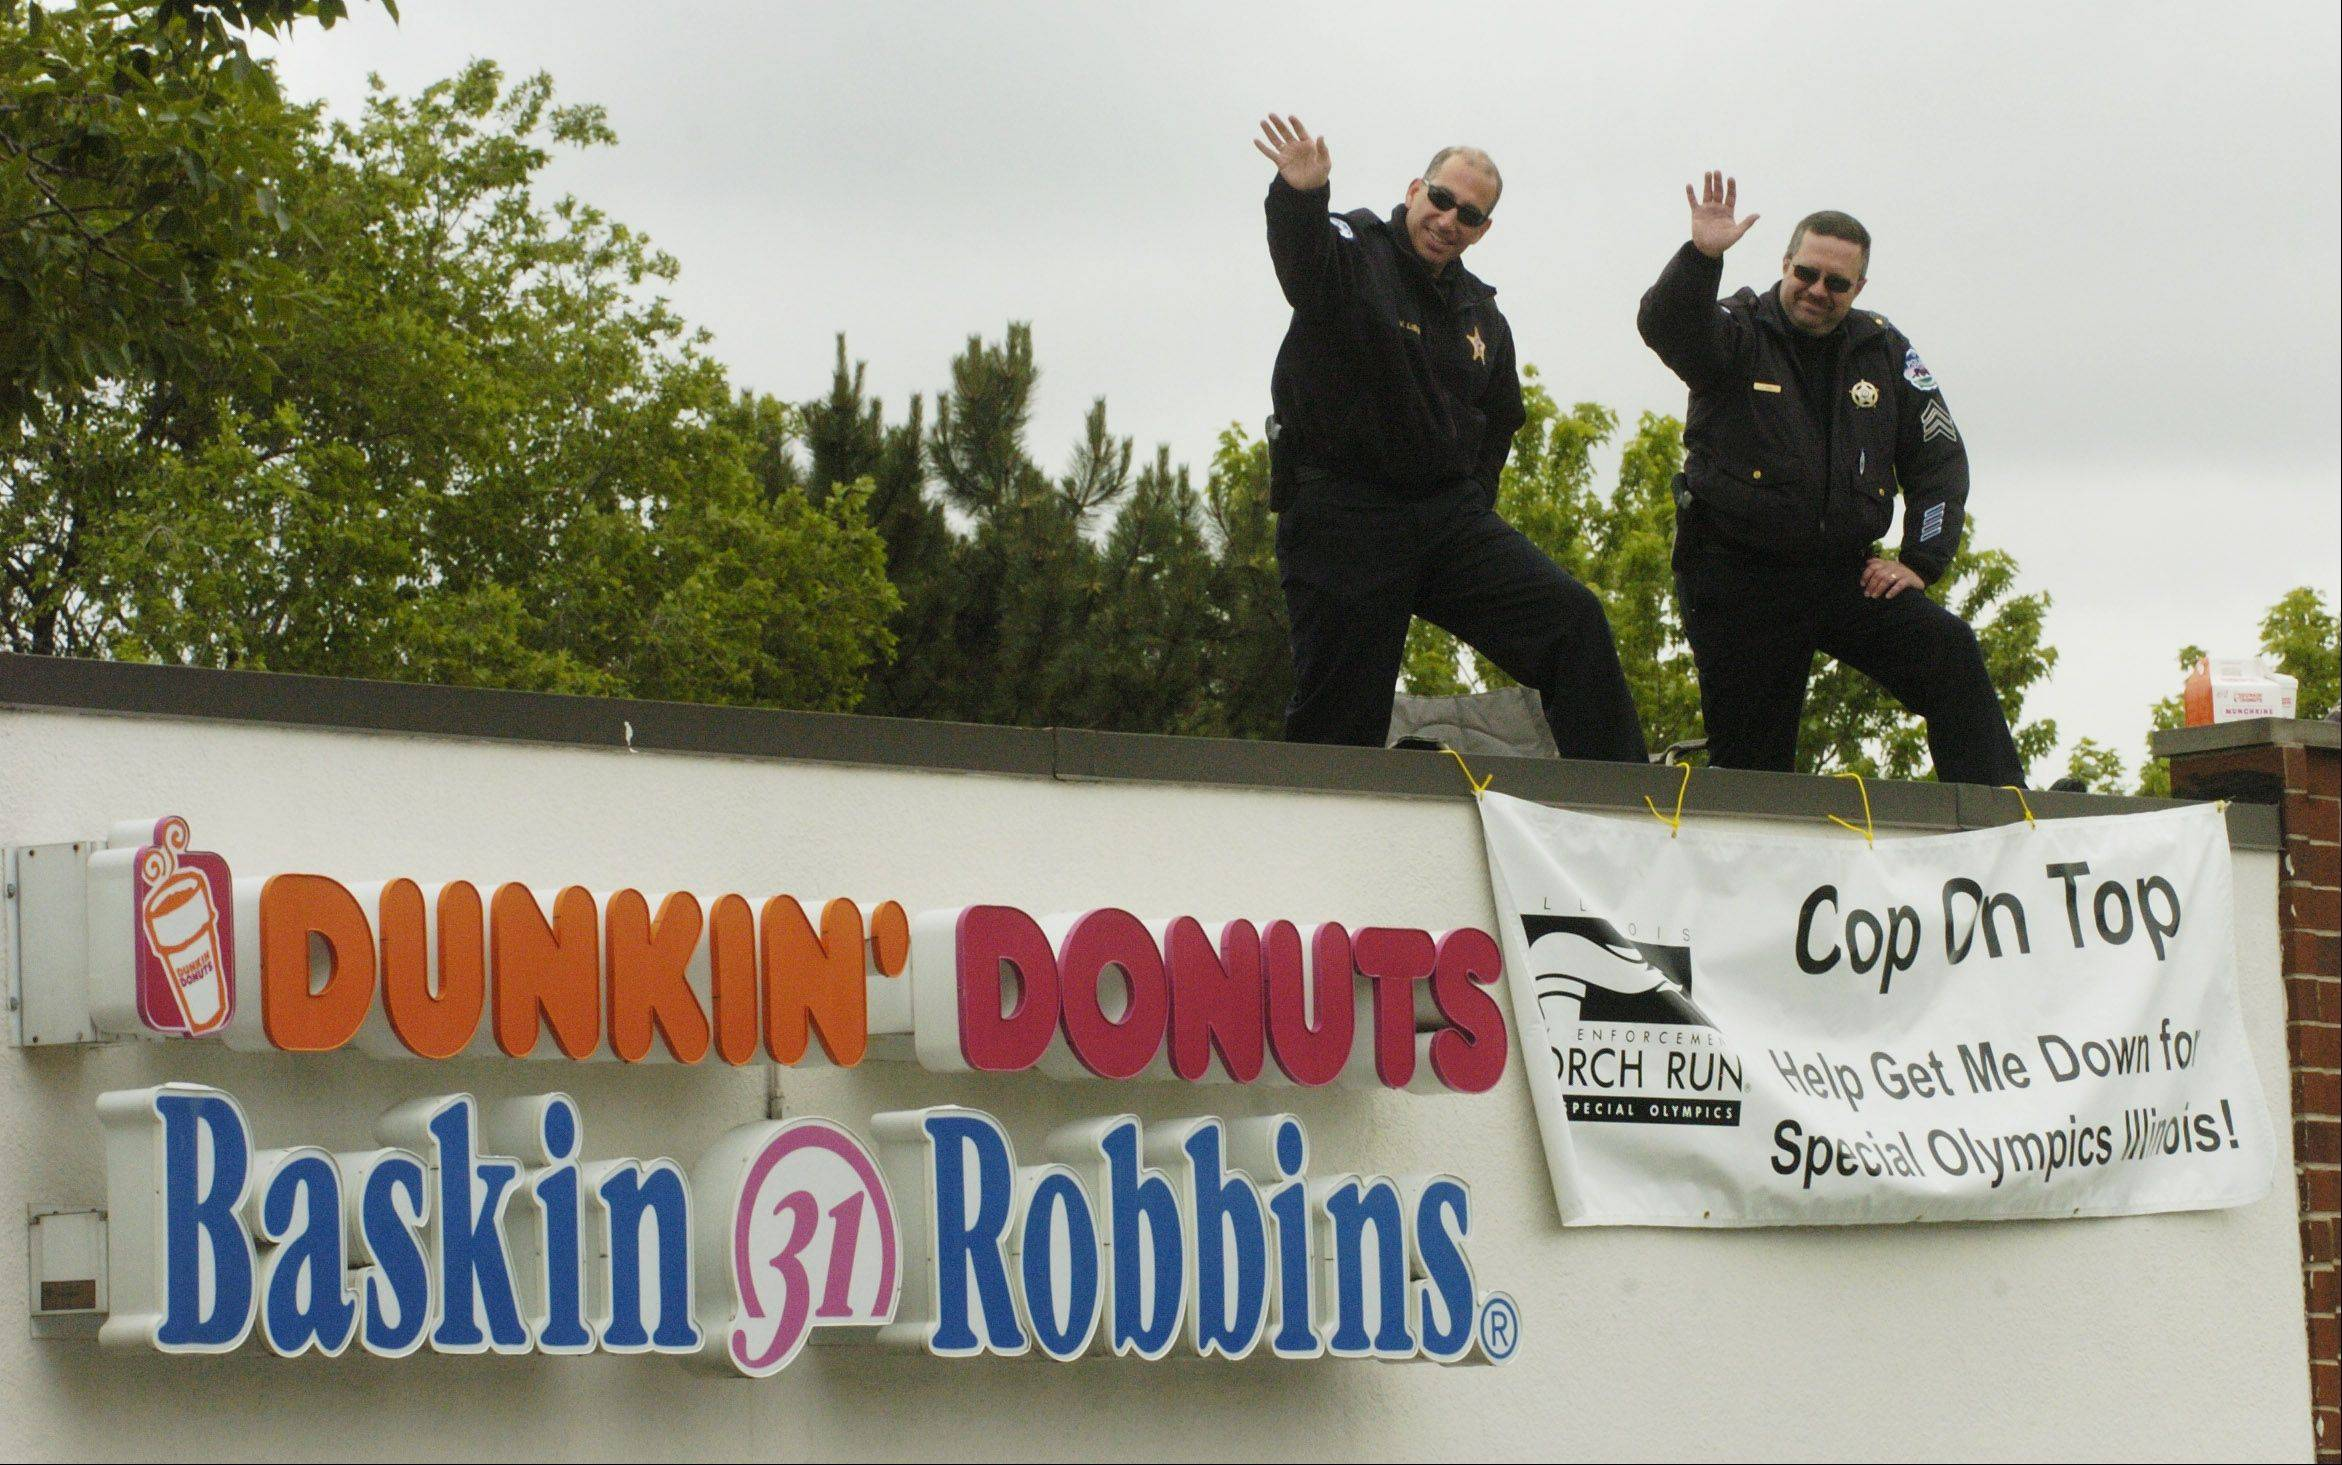 In 2012, Schaumburg police wave to patrons from the rooftop of the Dunkin' Donuts at Schaumburg and Plum Grove roads.